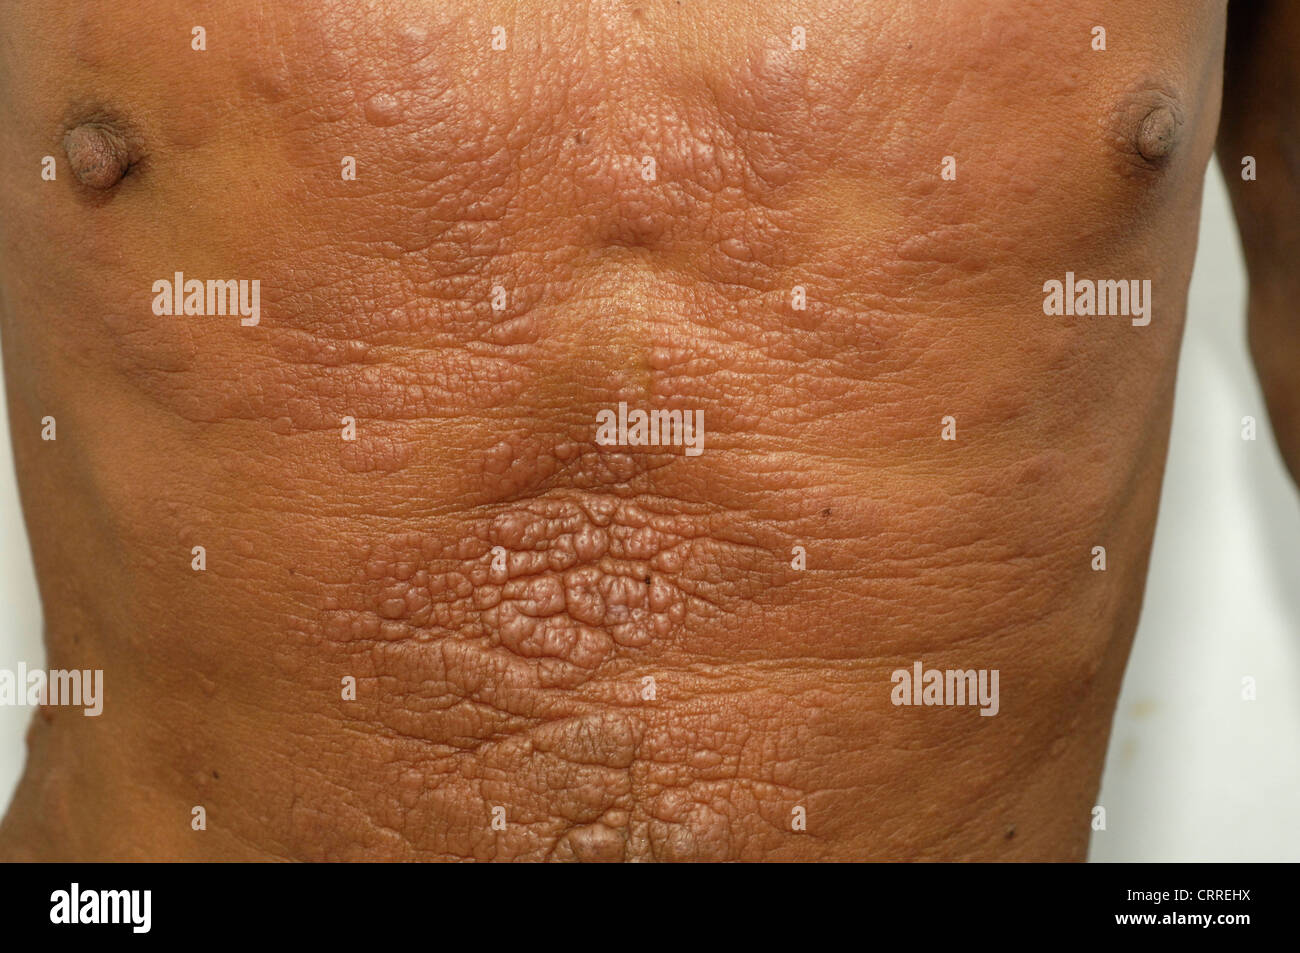 Chickenpox Dermatology Diseases Disease Dorsal Root - Stock Image